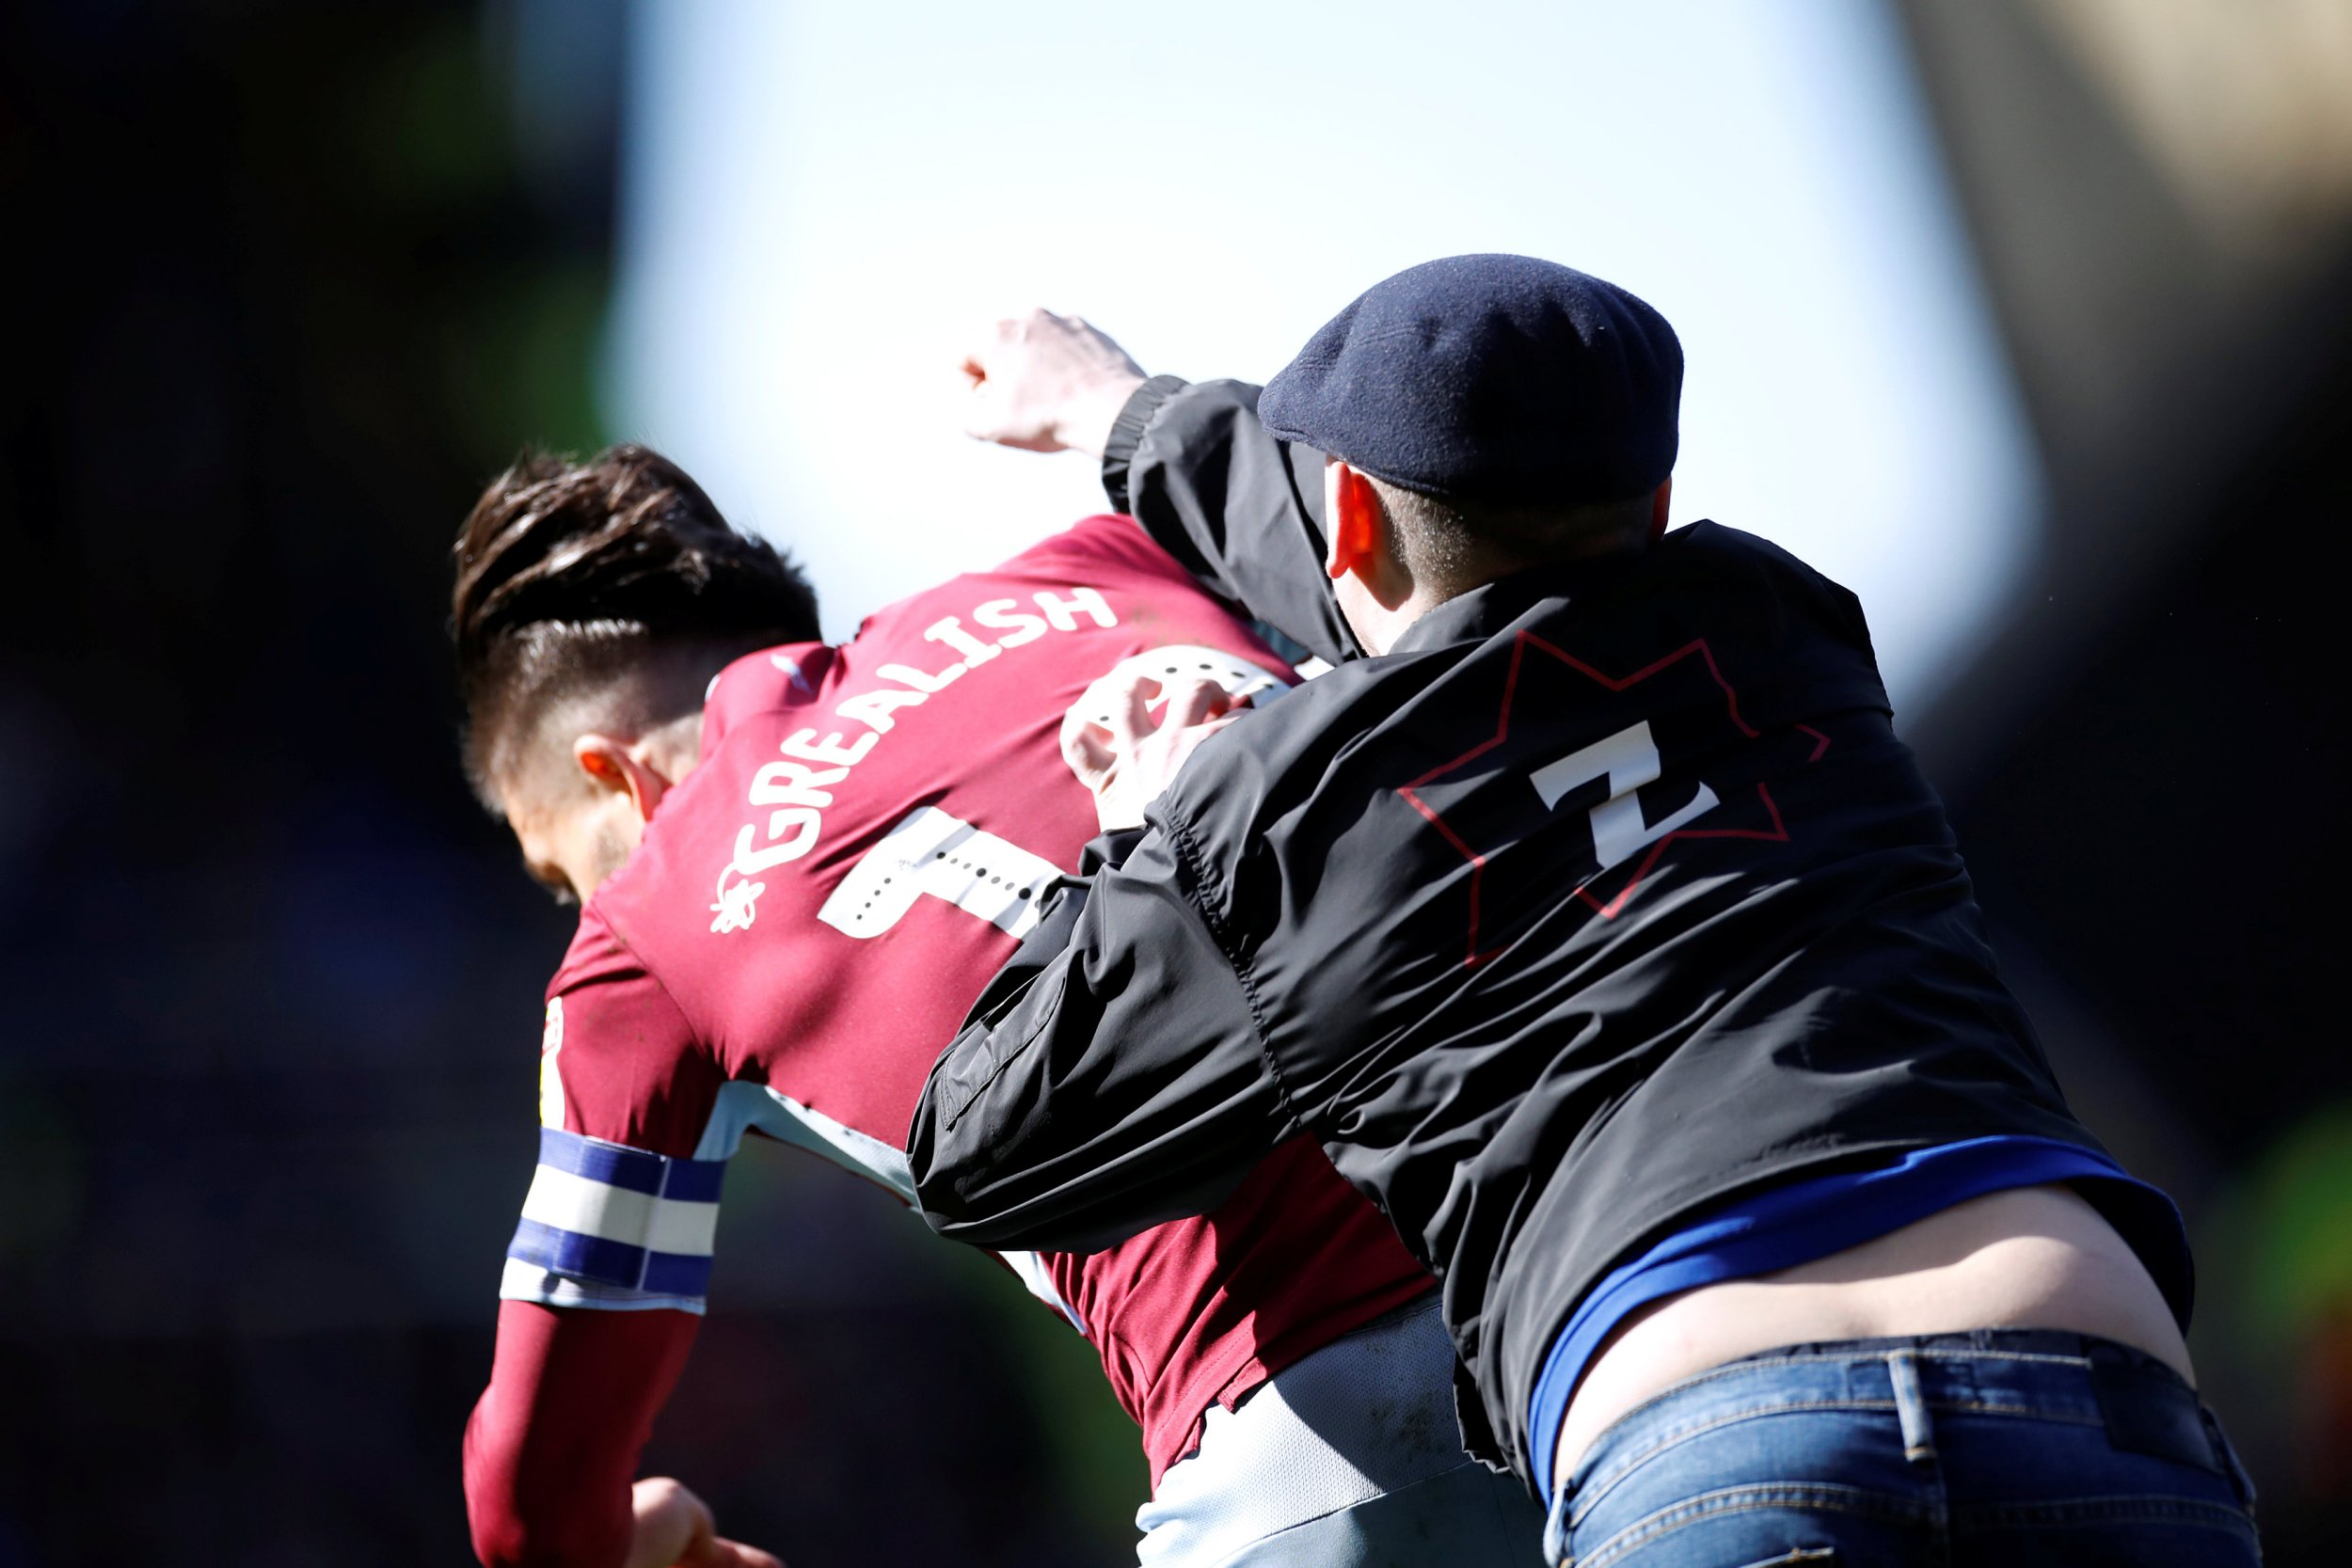 "Soccer Football - Championship - Birmingham City v Aston Villa - St Andrew's, Birmingham, Britain - March 10, 2019 A fan invades the pitch and attacks Aston Villa's Jack Grealish during the match Action Images/Carl Recine EDITORIAL USE ONLY. No use with unauthorized audio, video, data, fixture lists, club/league logos or ""live"" services. Online in-match use limited to 75 images, no video emulation. No use in betting, games or single club/league/player publications. Please contact your account representative for further details."